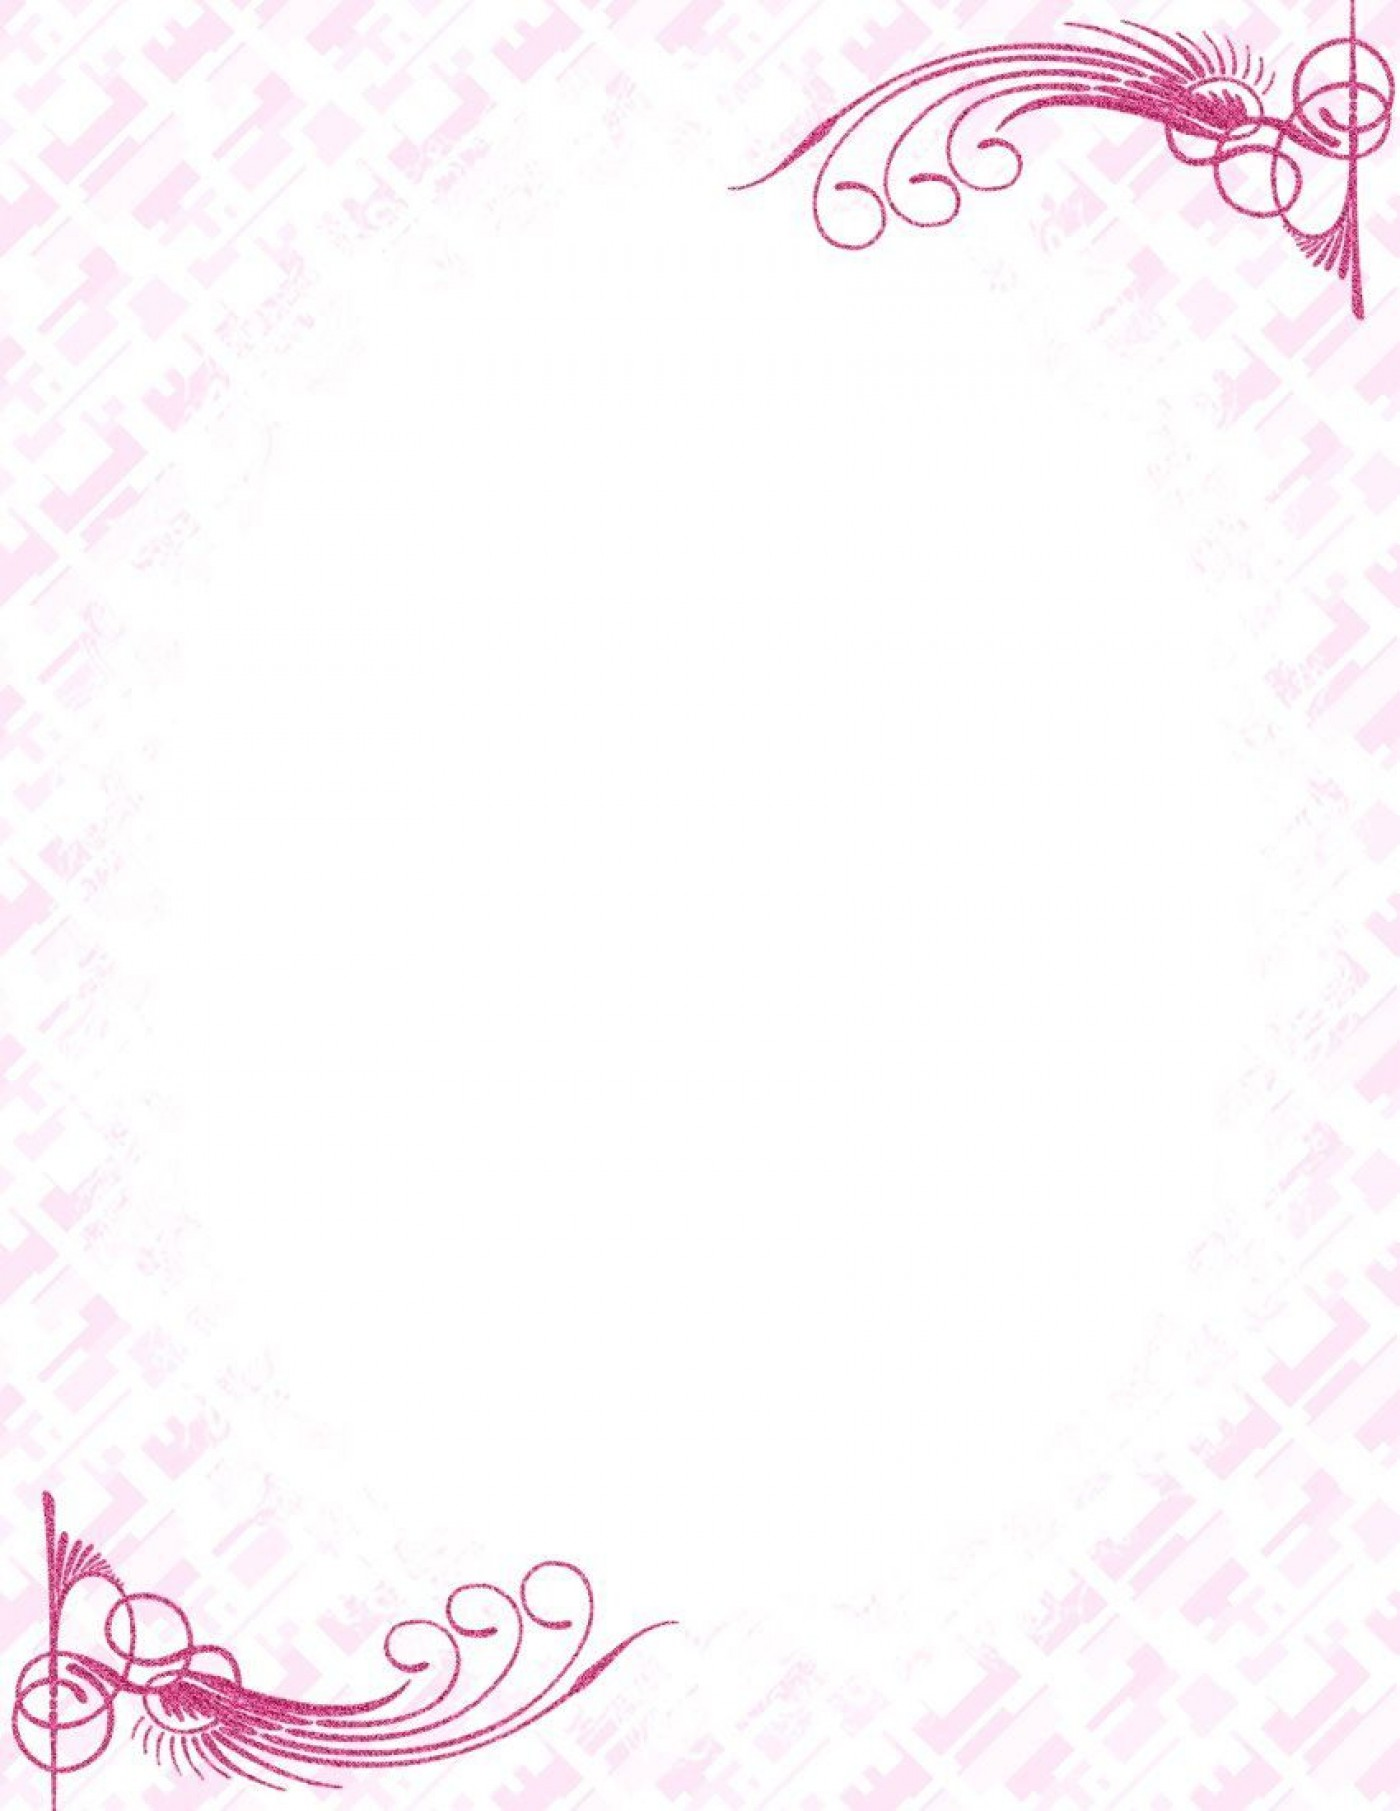 009 Top Free Printable Stationery Paper Template Highest Clarity 1400